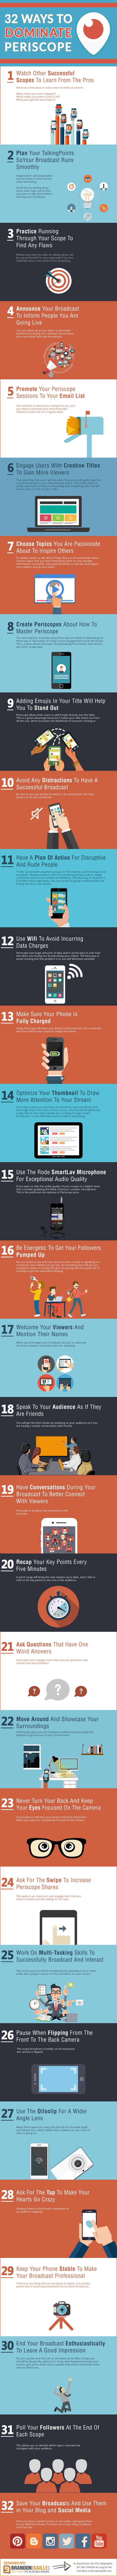 32 Ways to Dominate Periscope - @visualistan